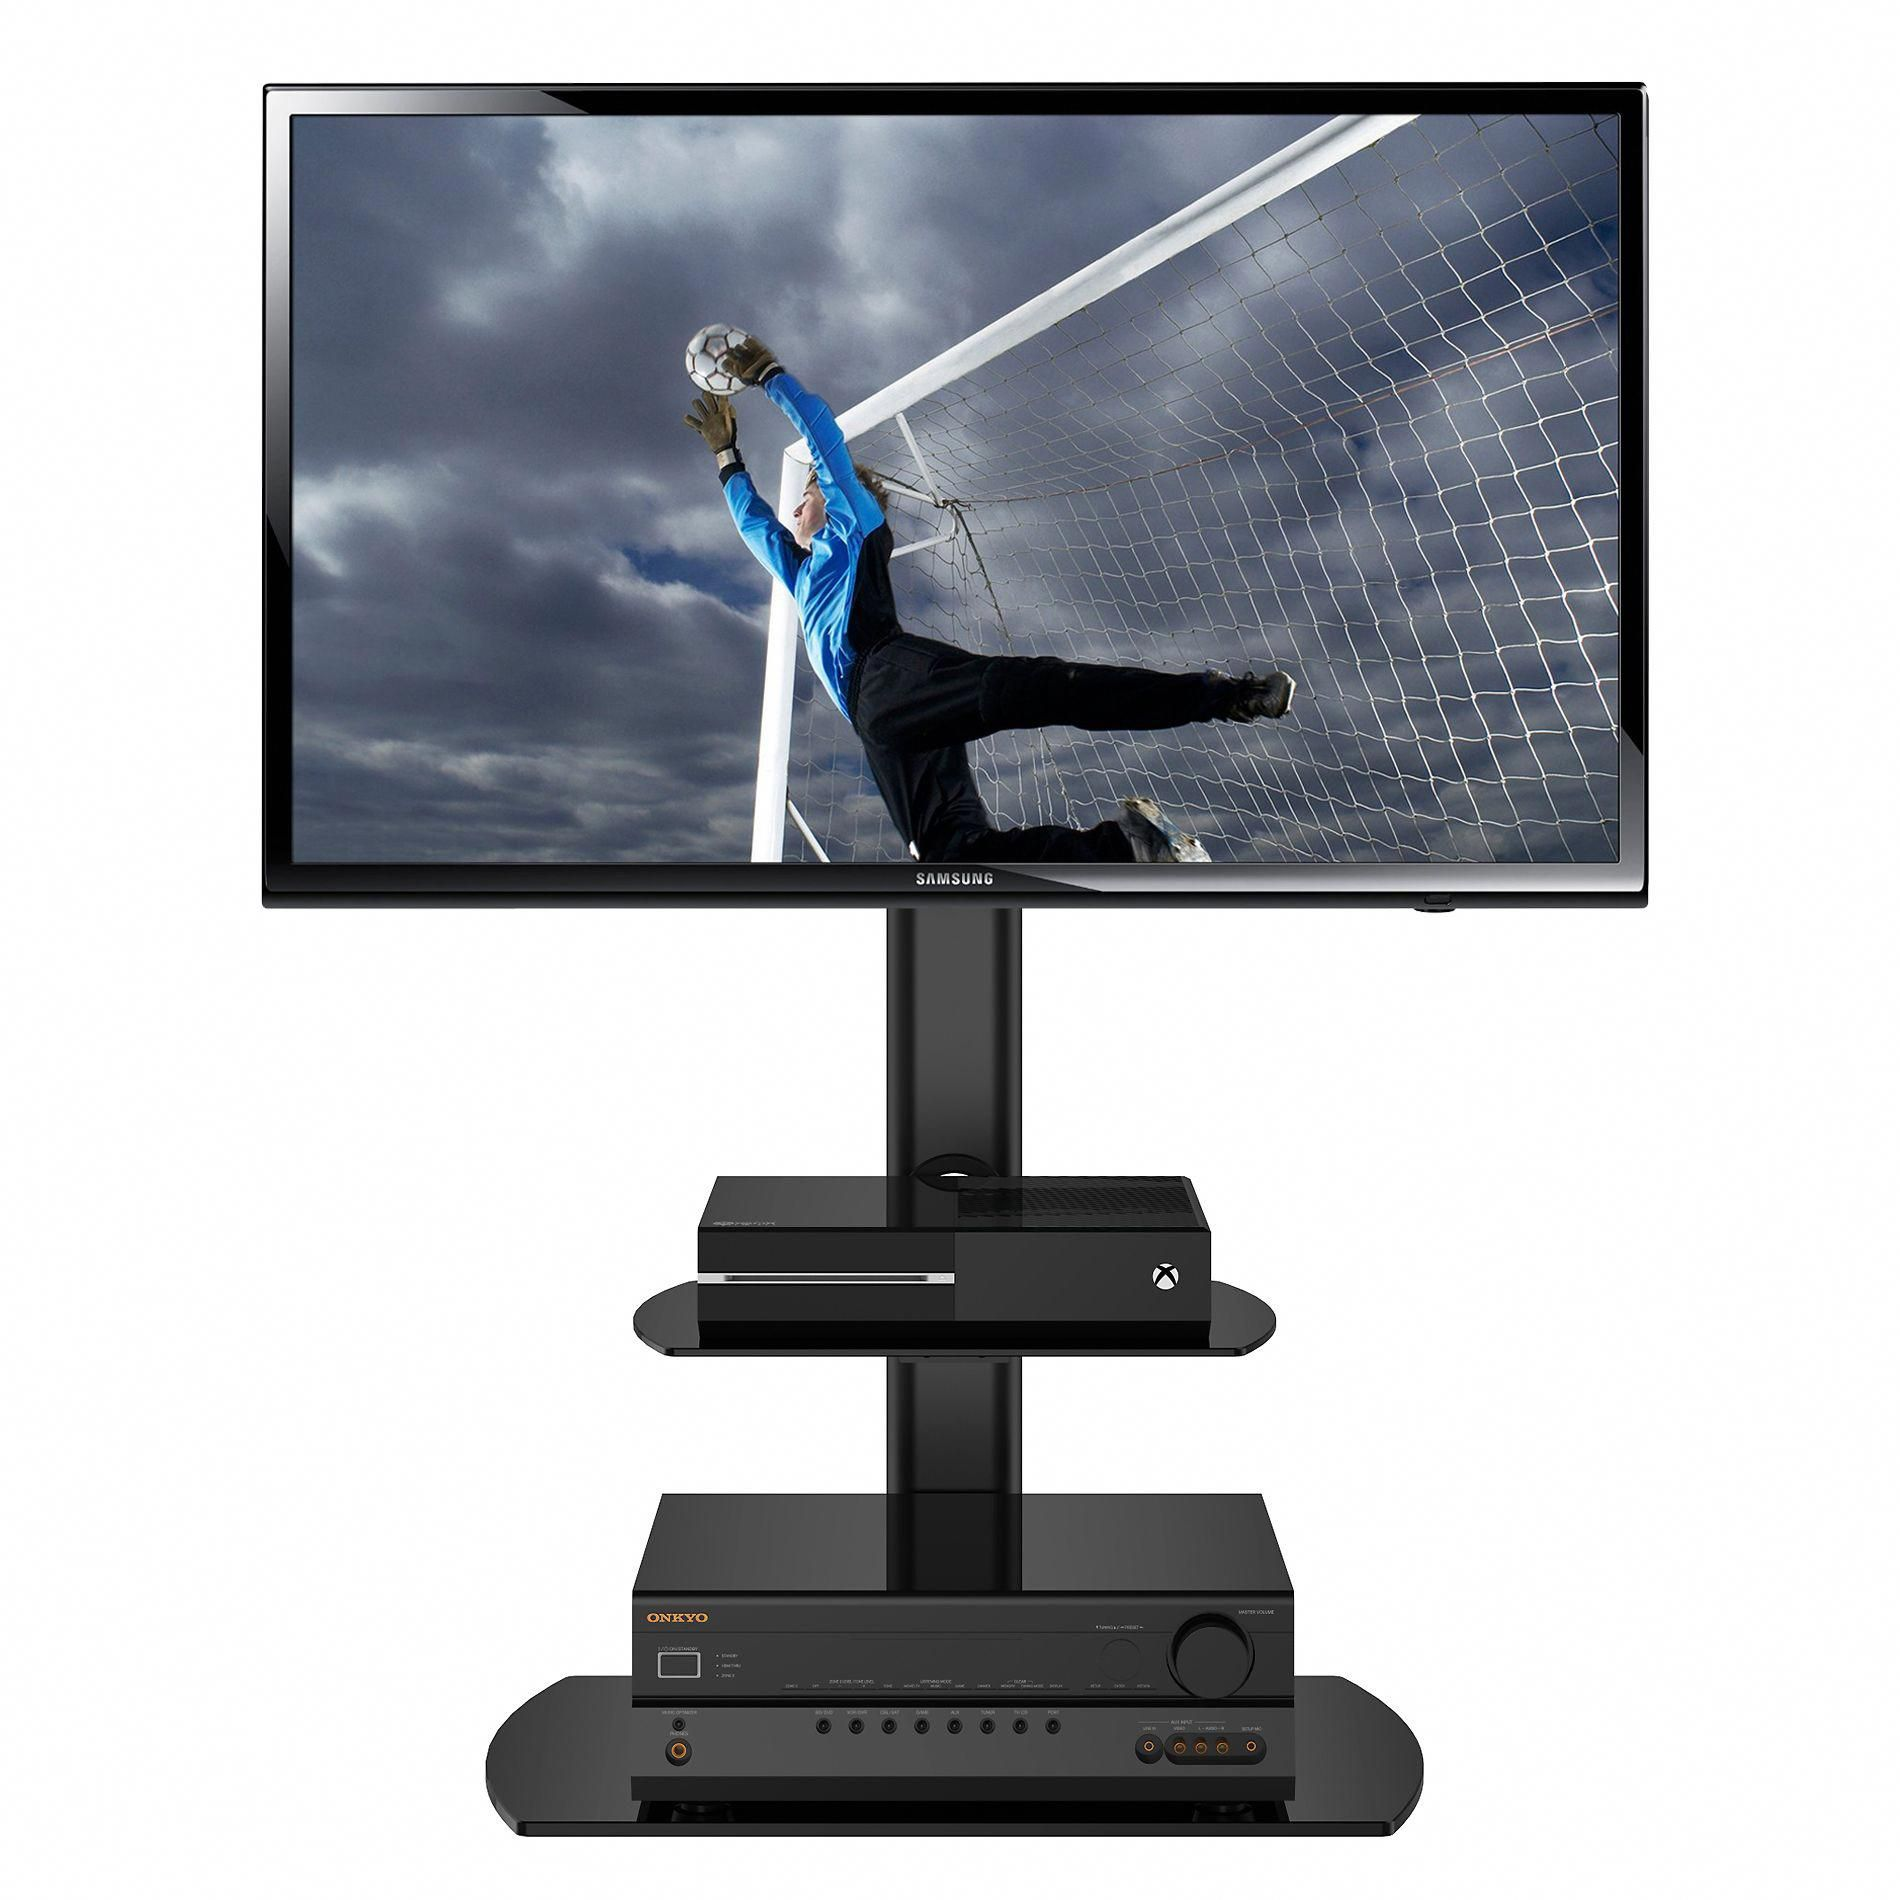 Swivel Black Tv Floor Stand With Mount And Two Component Shelves Adjule Height For 32 To 50 Inch Plasma Lcd Led Flat Screen Tvs Swivelstandfortv